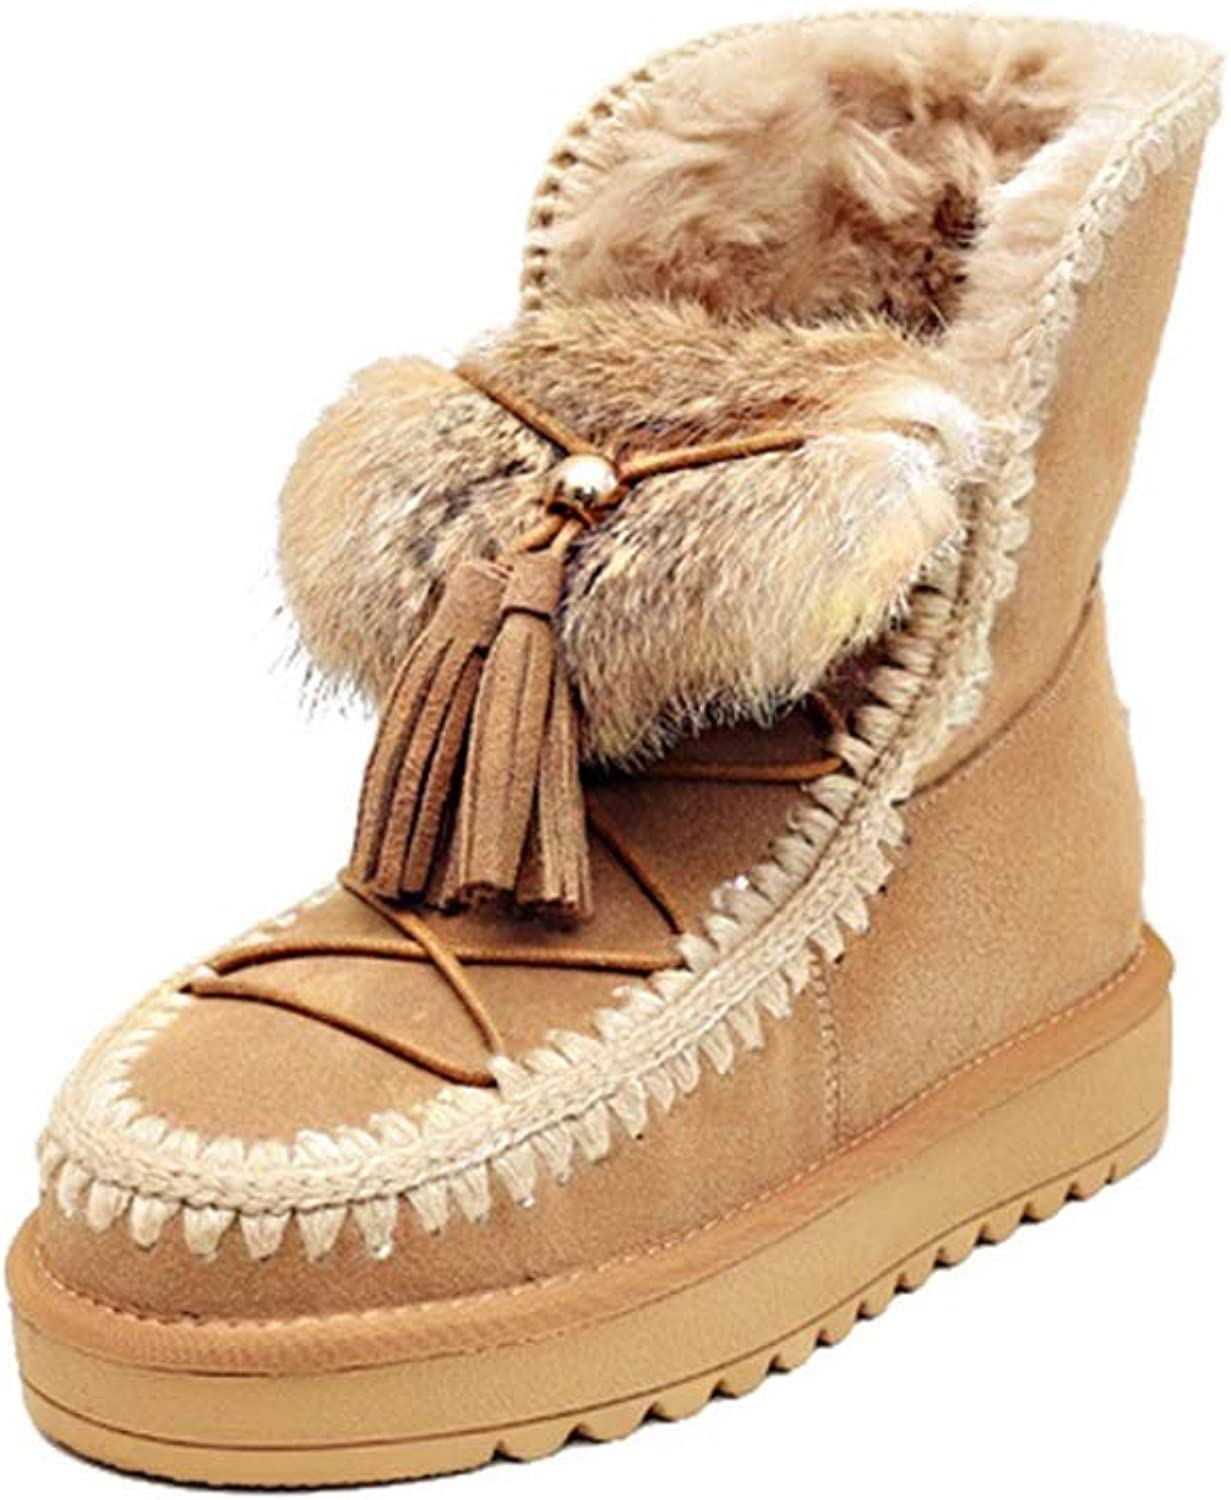 Women's Boots Suede Snow Boots Winter Flat Ankle Boots High-top Casual shoes Warm Platform shoes Fashion Deck shoes (color   Yellow, Size   34)